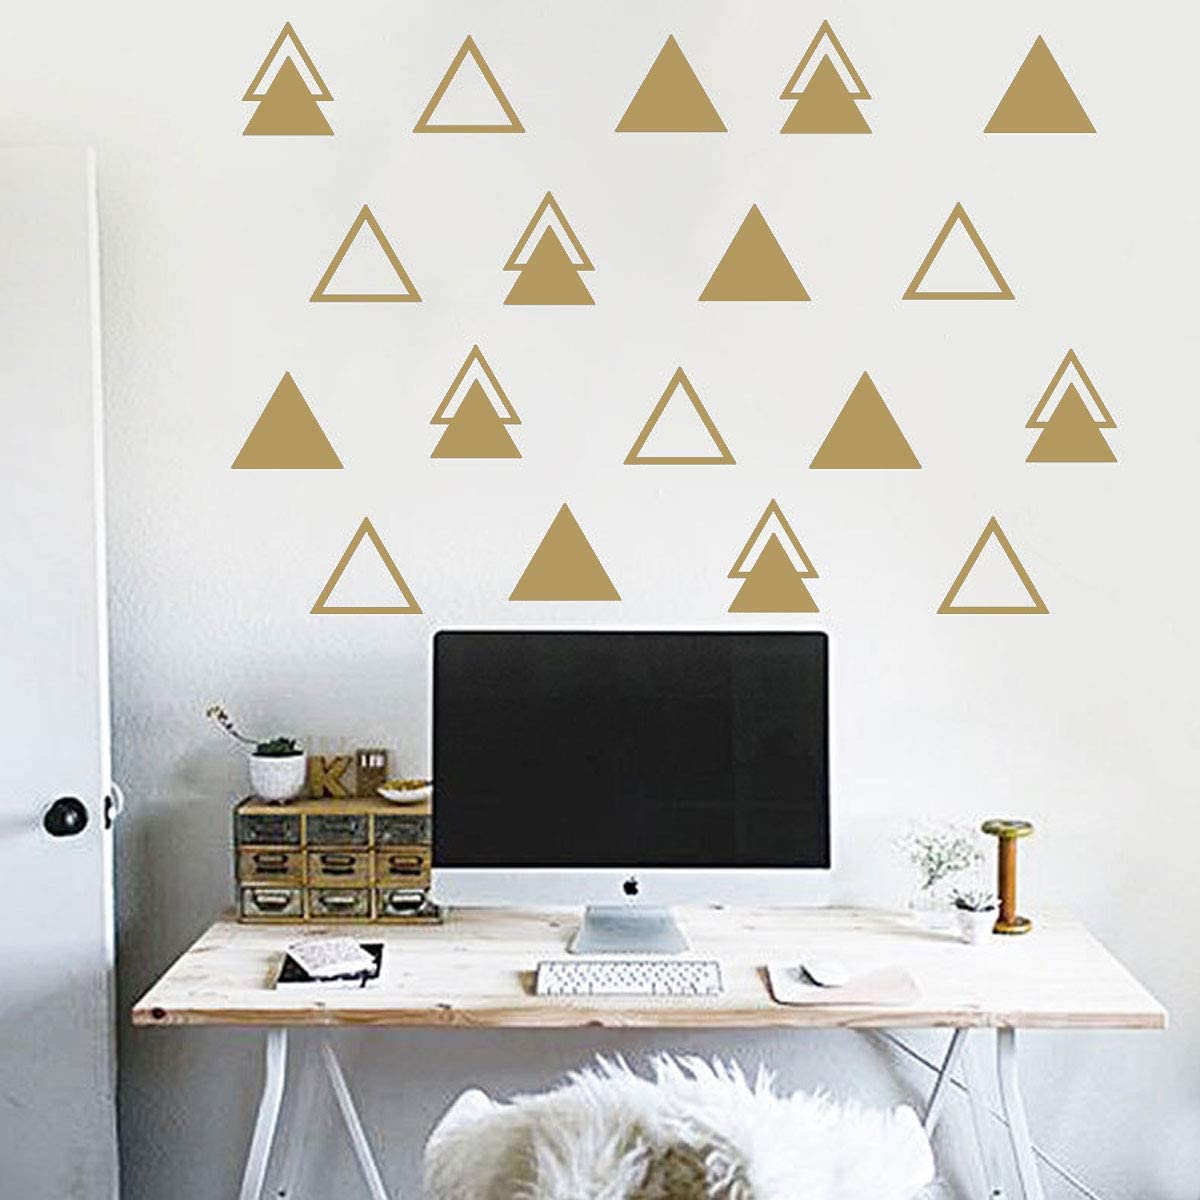 Triangle Wall Decal Stickers 90 Pcs Nursery Wall Removable Vinyl Stickers DIY Home Wall Decor for Baby Kids Bedroom 2.7-90 Silver